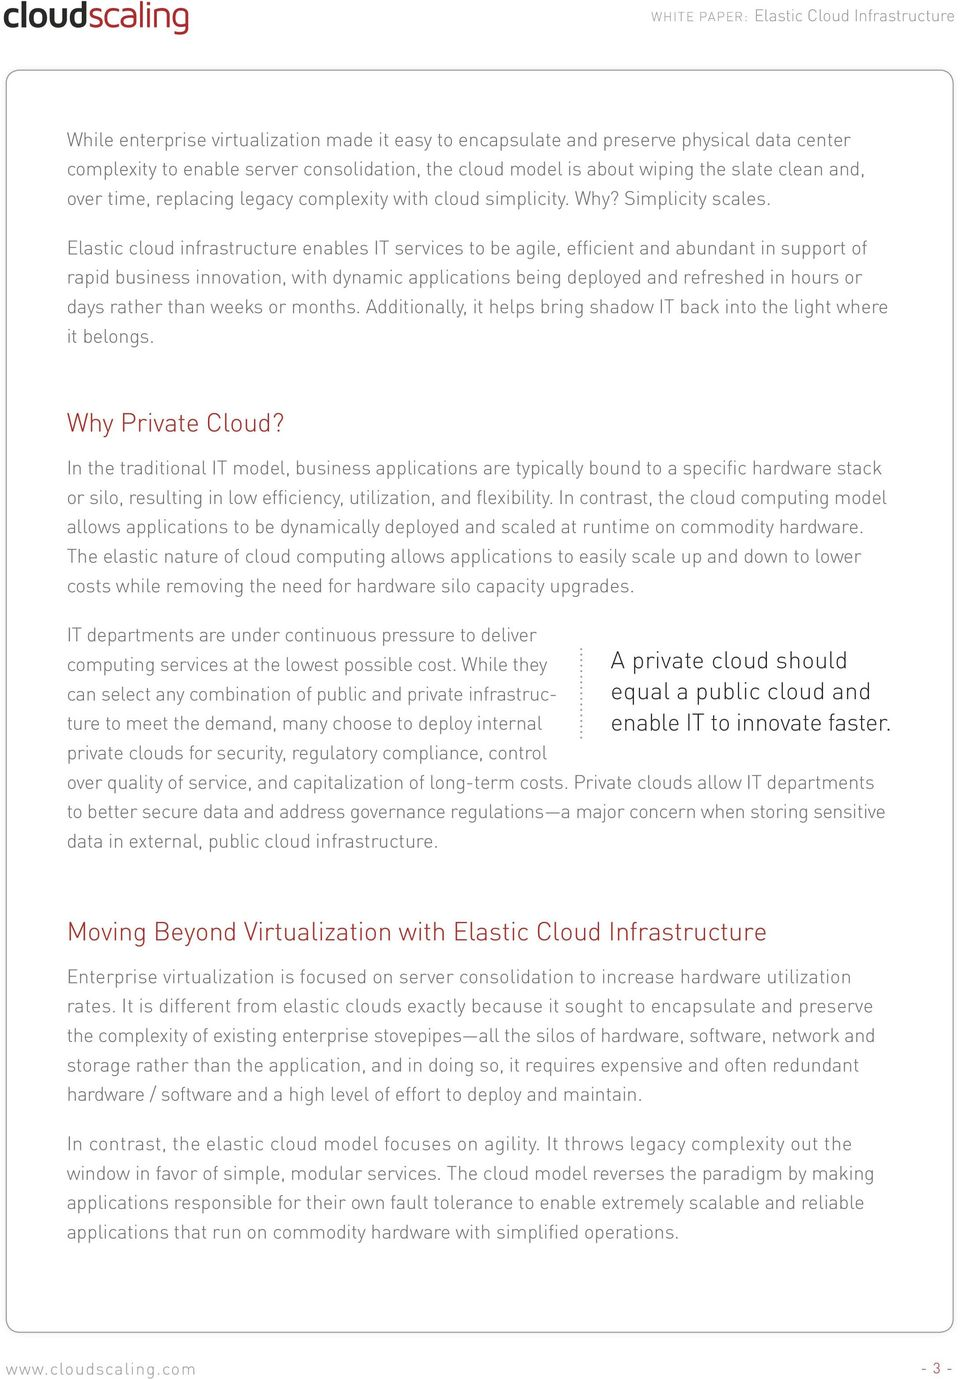 Elastic cloud infrastructure enables IT services to be agile, efficient and abundant in support of rapid business innovation, with dynamic applications being deployed and refreshed in hours or days